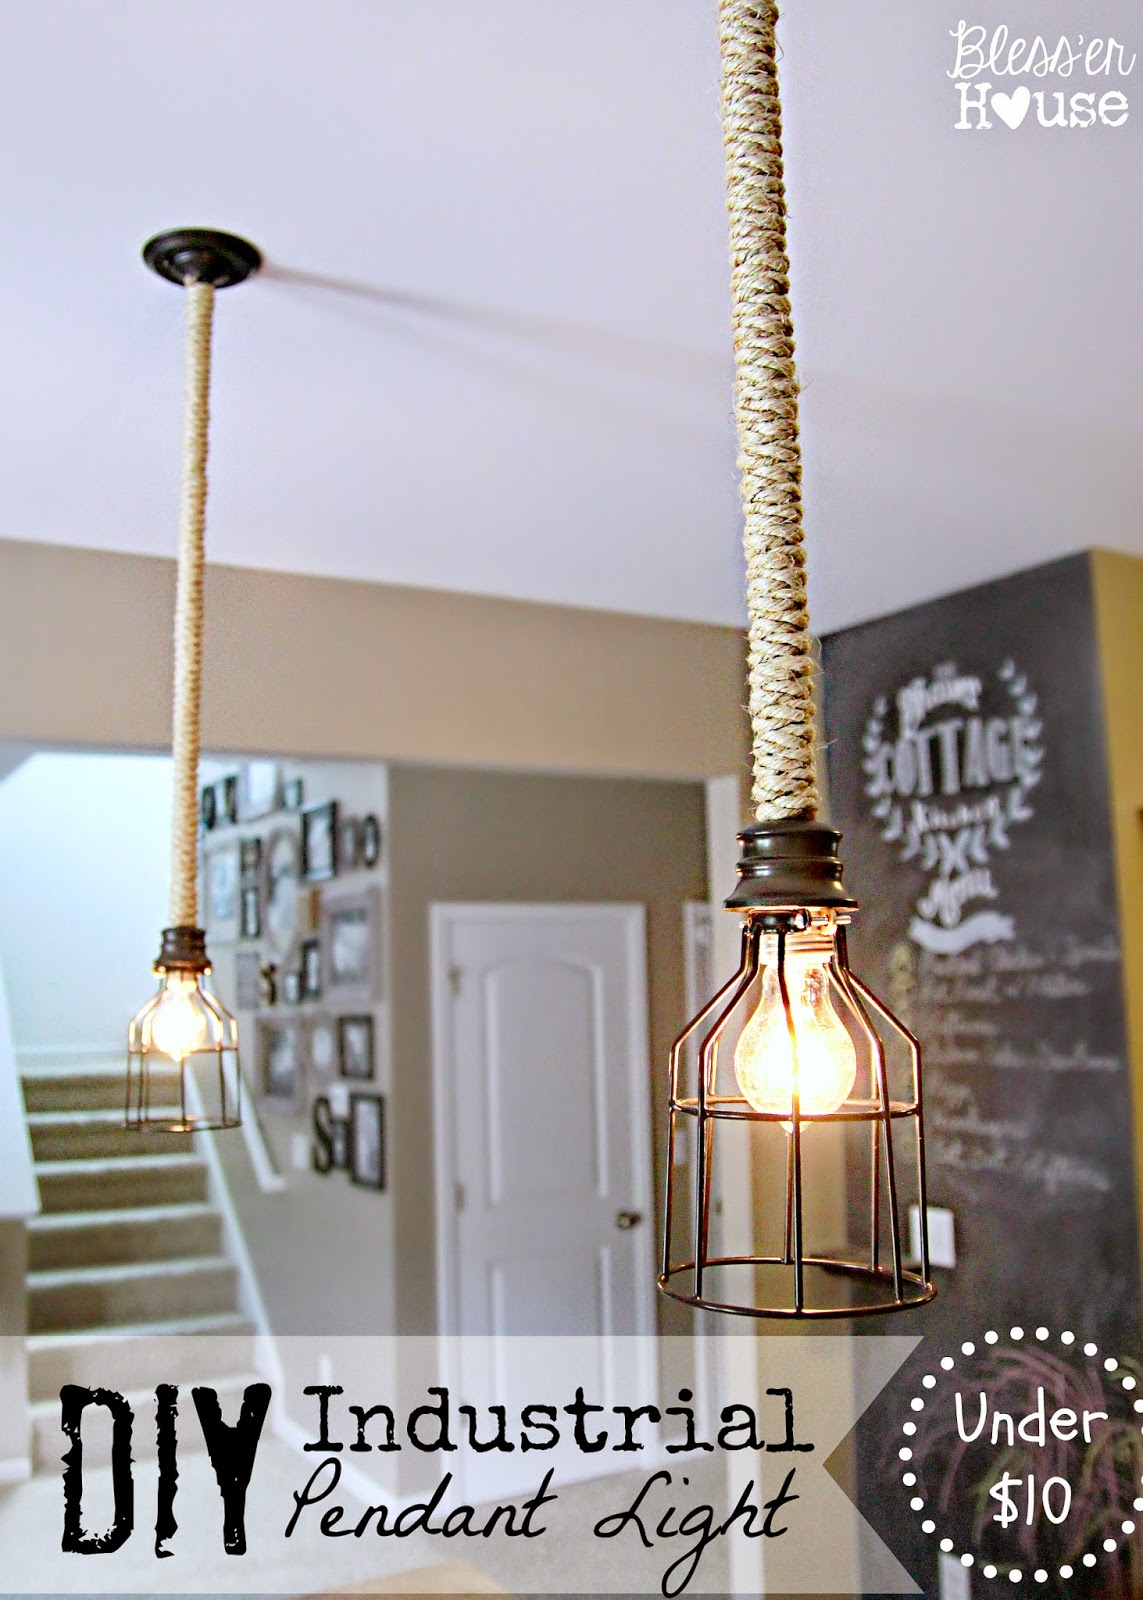 5 DIY Industrial Light Fixtures for Under $25 - Bless\u0027er House